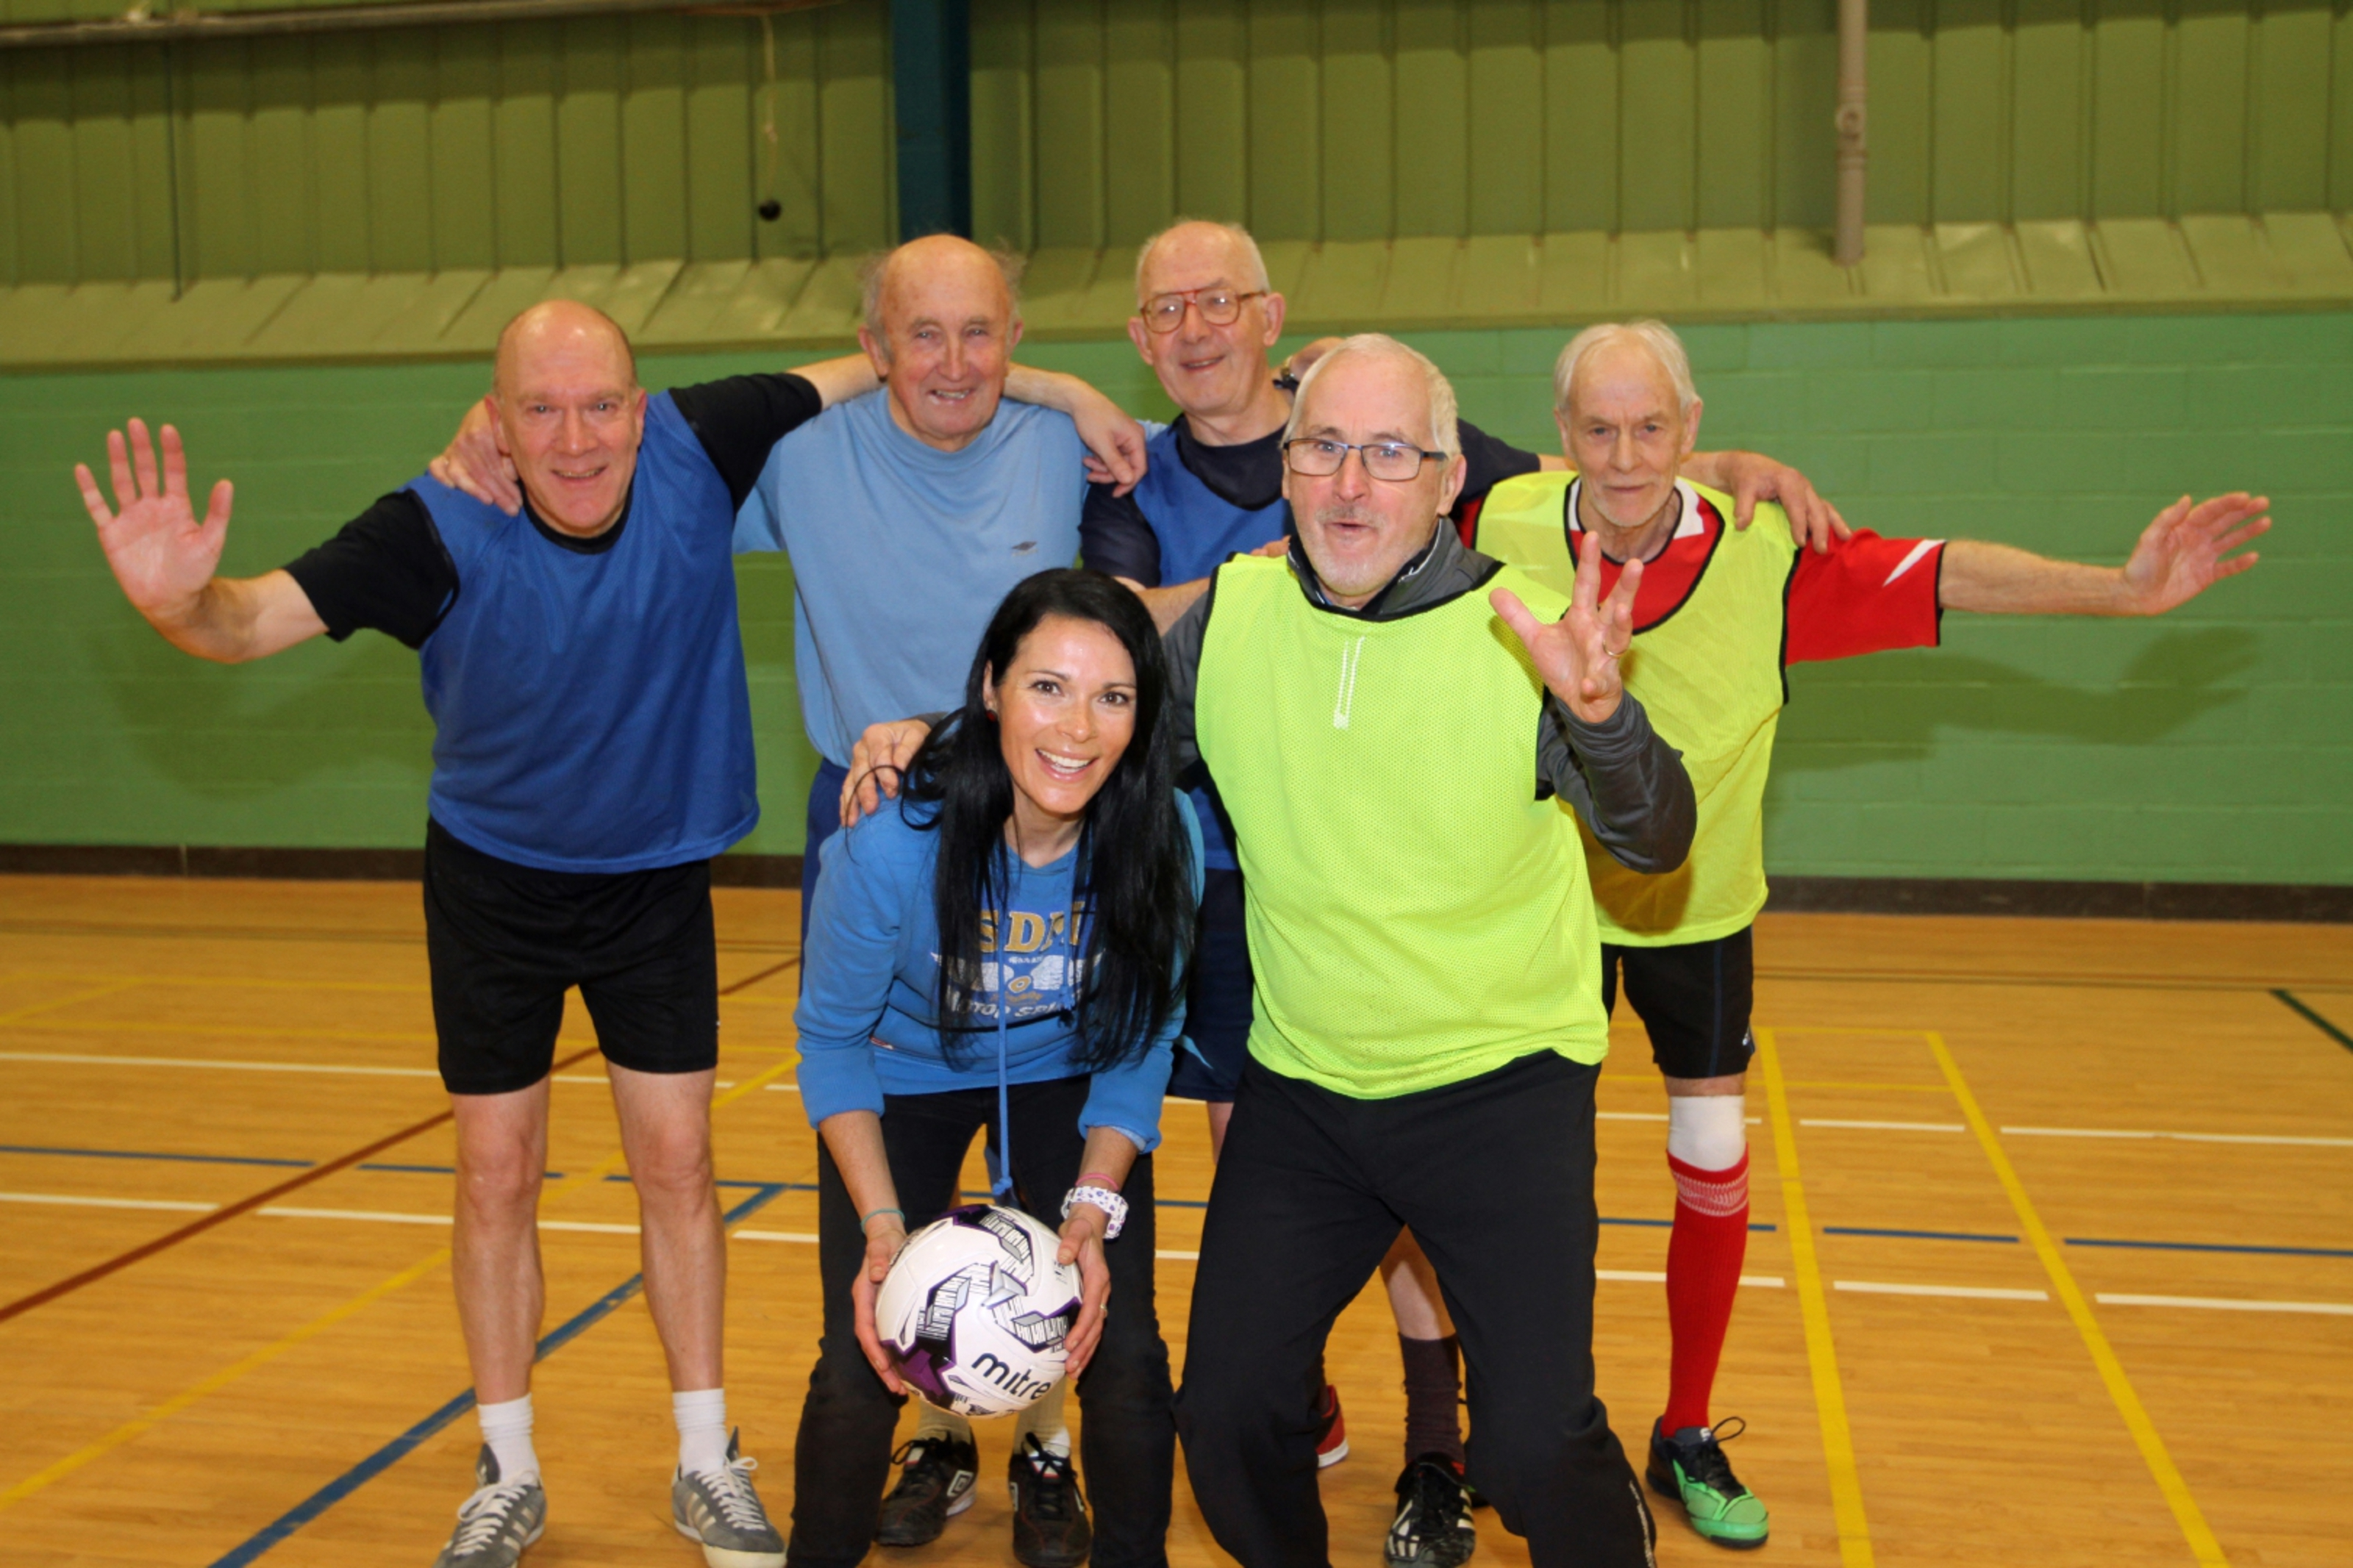 Richard Rogala, Bob Thomson, Alan Barron, Ian Dempster and front, Peter Kelly with Gayle.